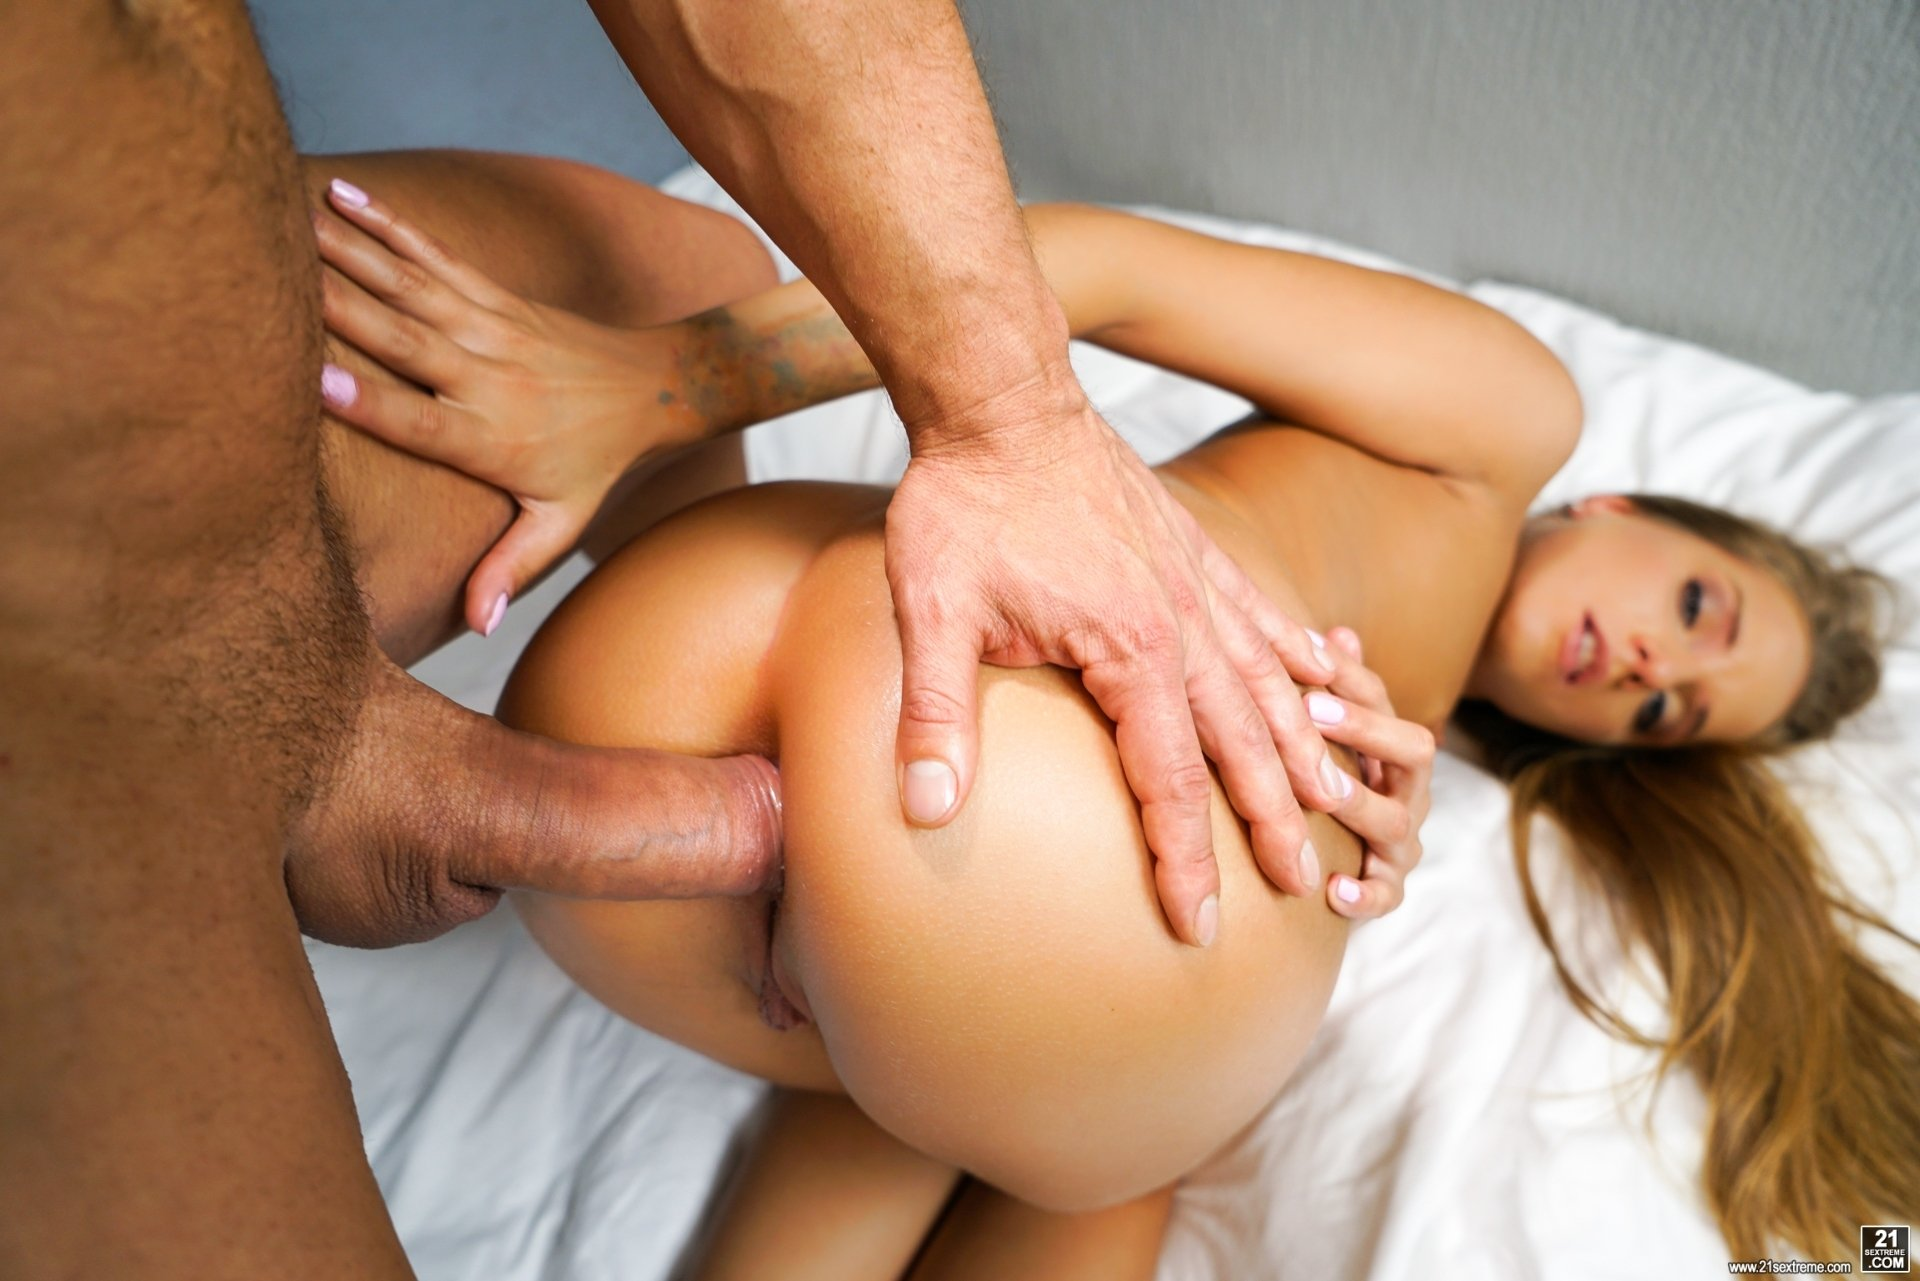 Cheating wife anal sex #1